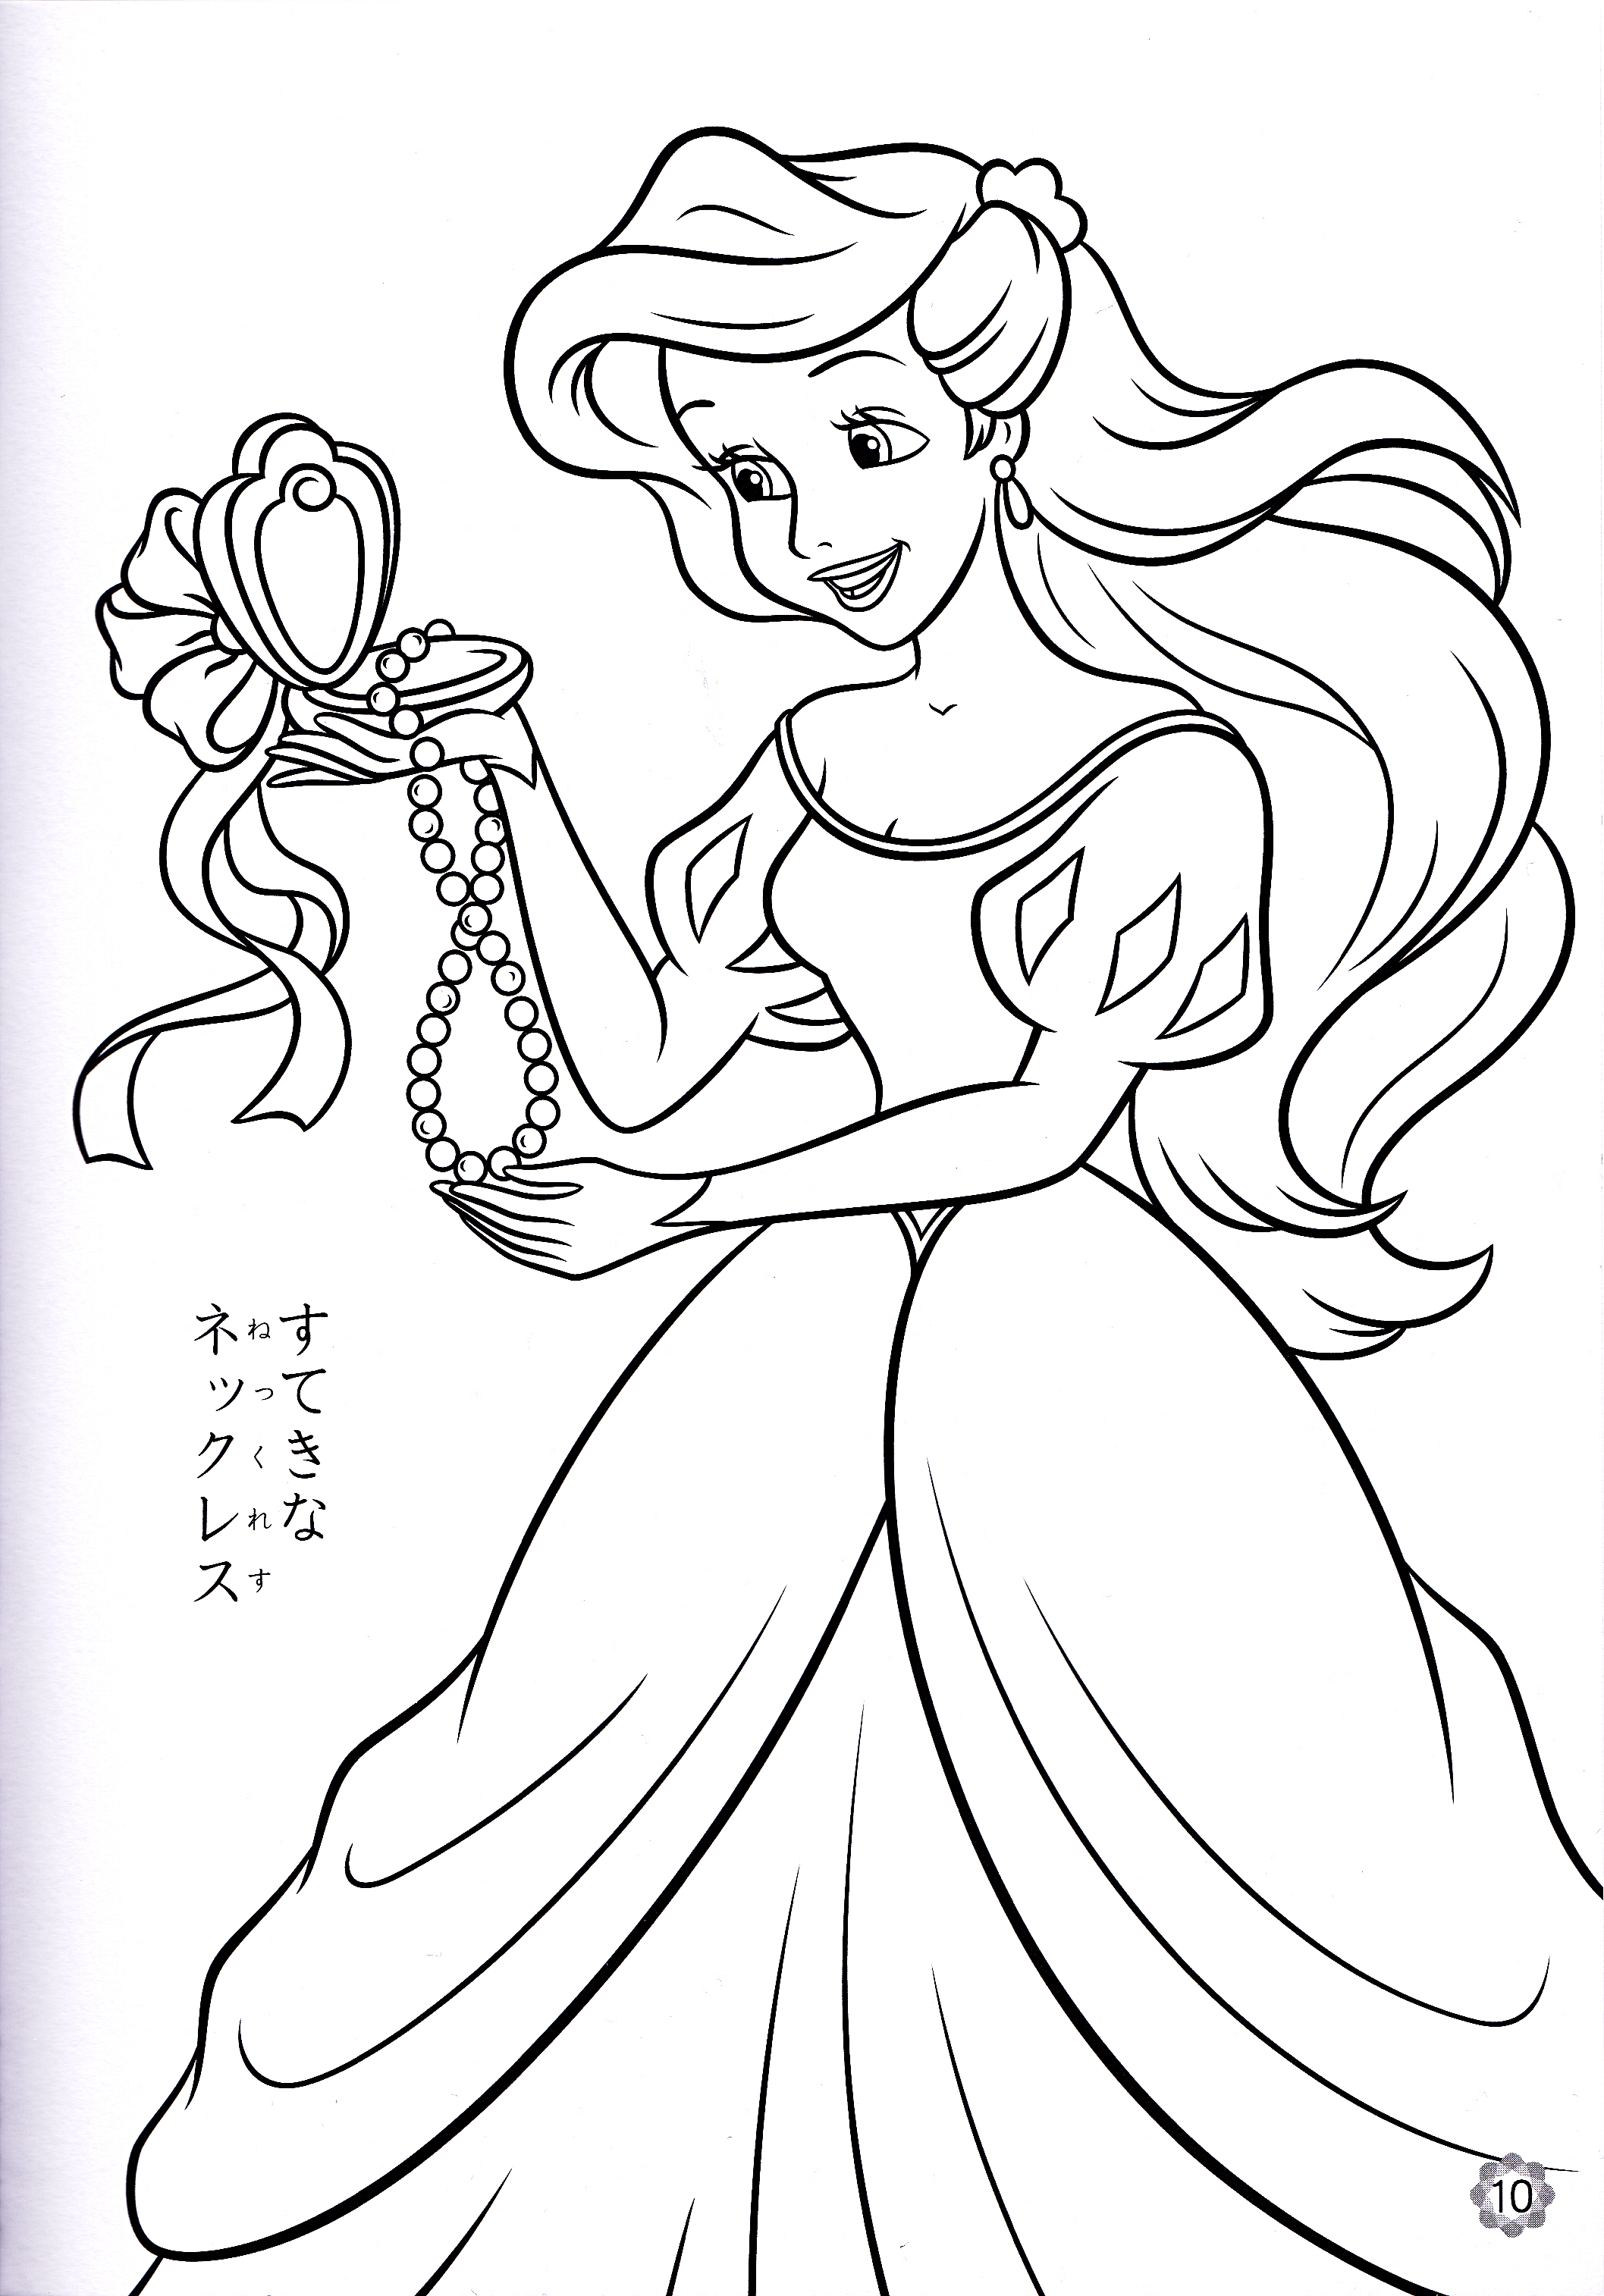 coloring pages of disney princesses - photo#21